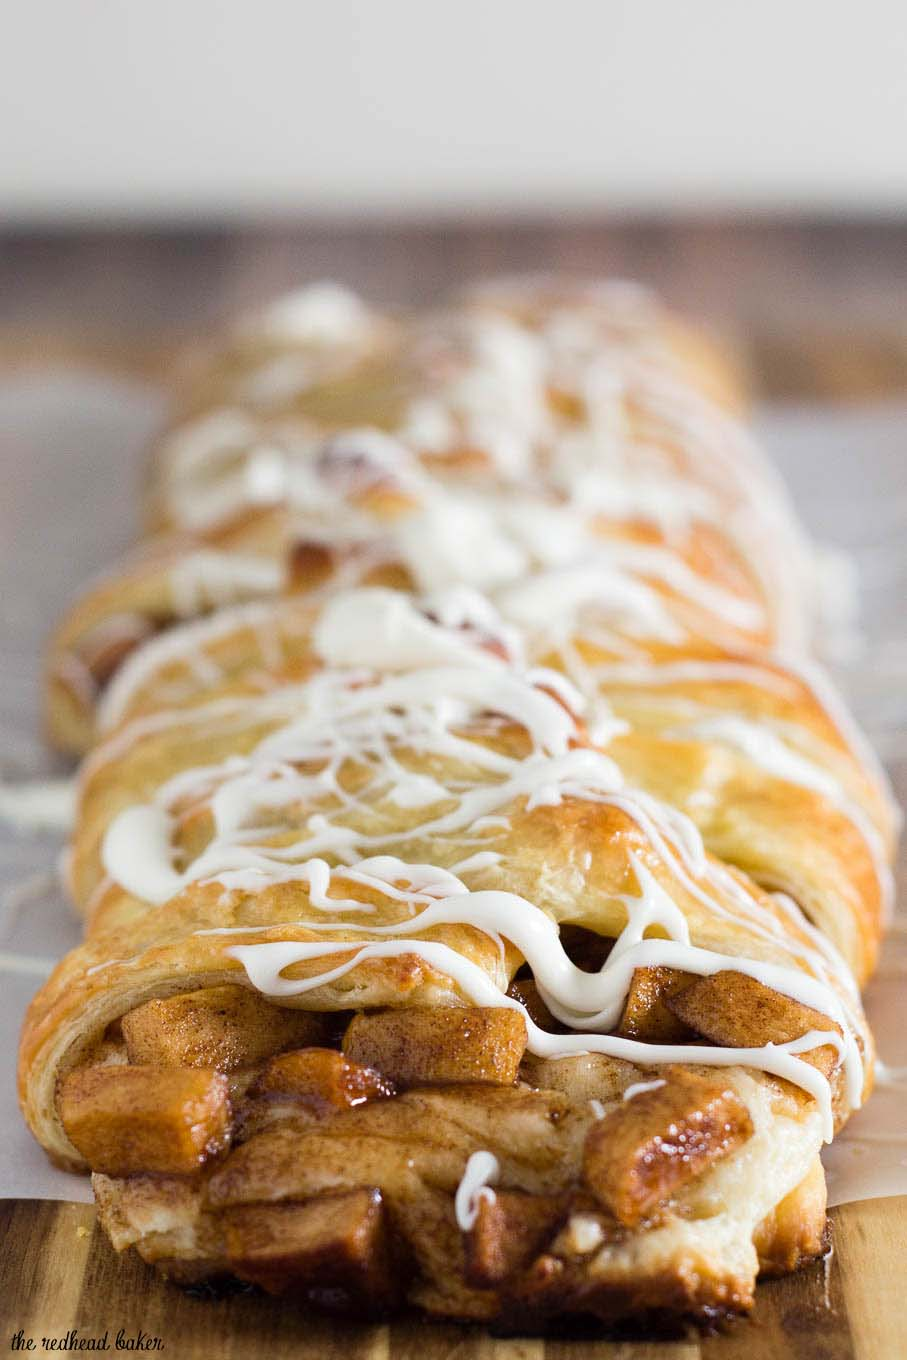 An apple Danish braid is a delicious fruit-filled pastry to serve at brunch. Flaky pastry covers sauteed cinnamon apples and sweetened cream cheese. #BrunchWeek